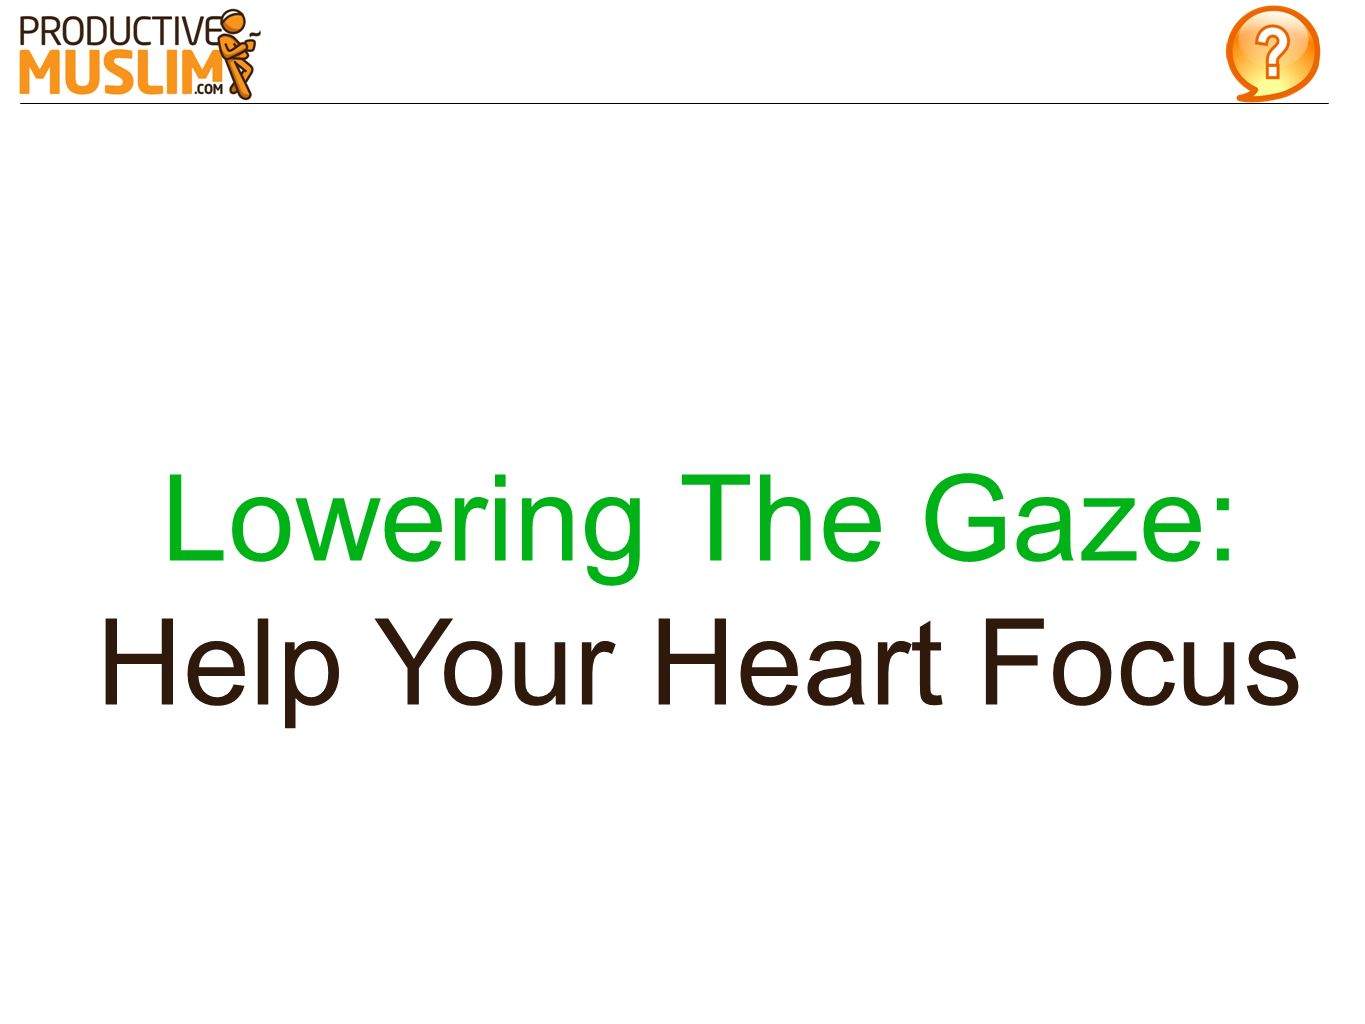 Lowering The Gaze: Help Your Heart Focus